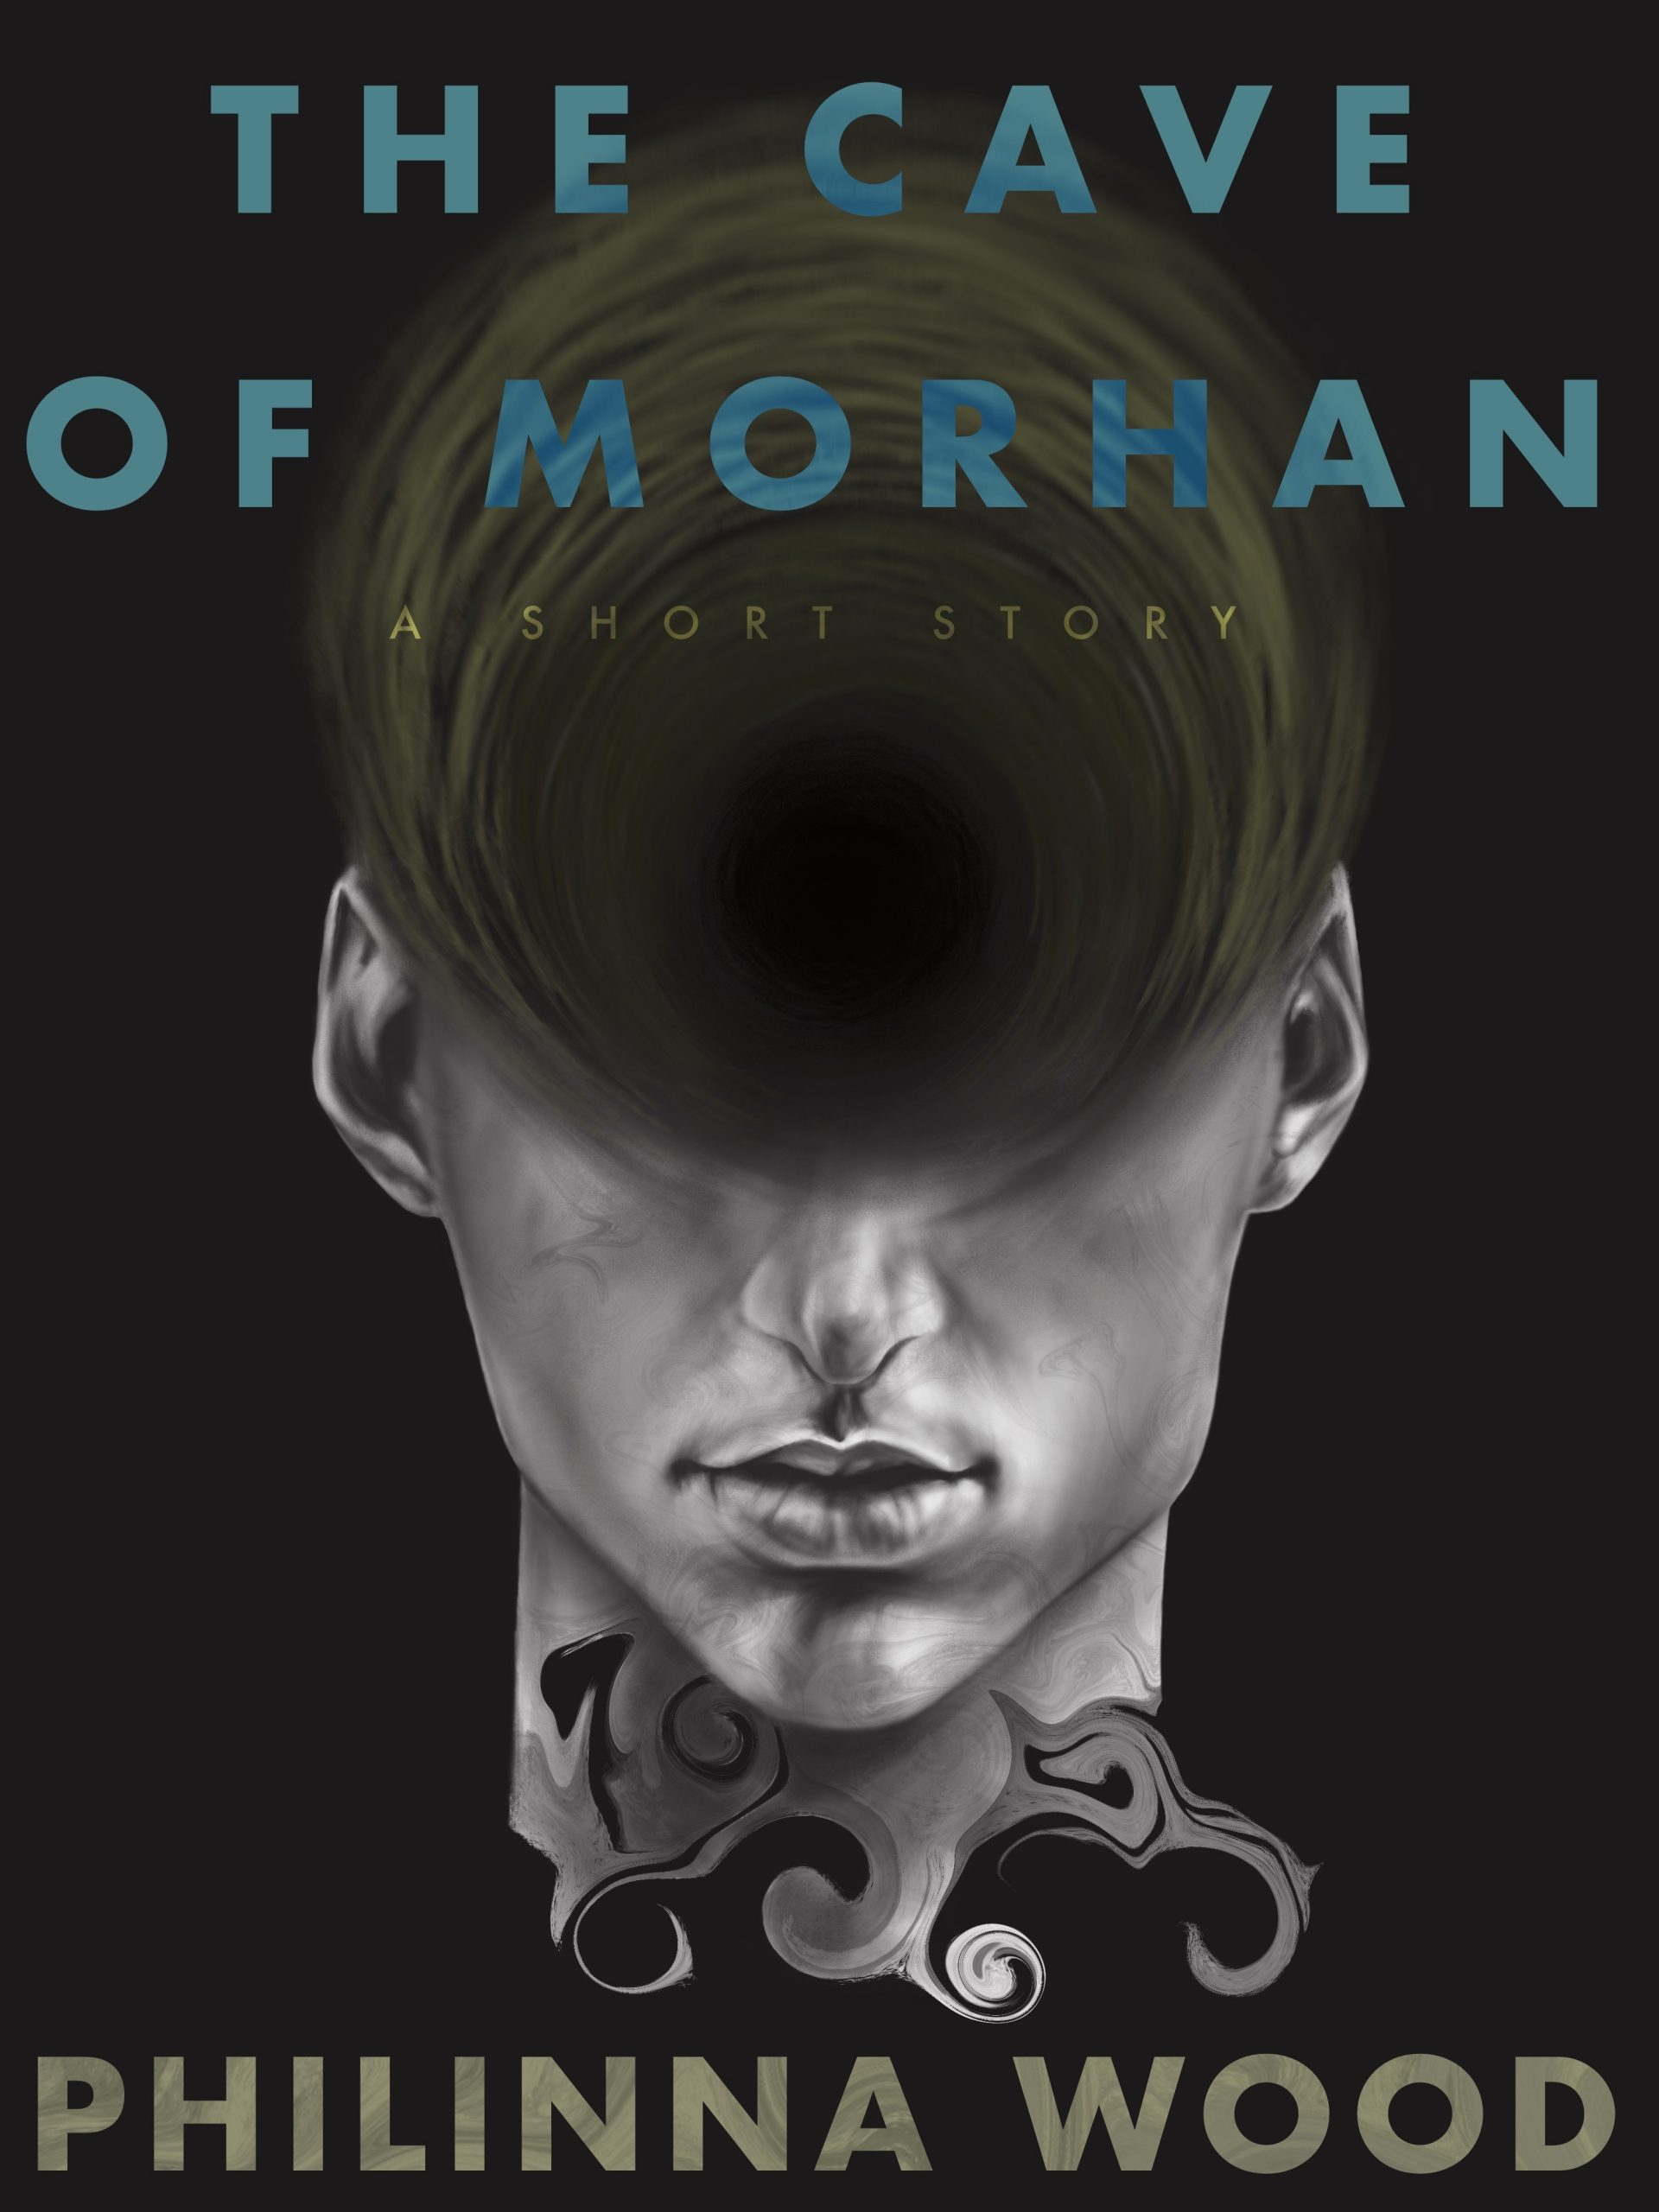 The Cave of Morhan